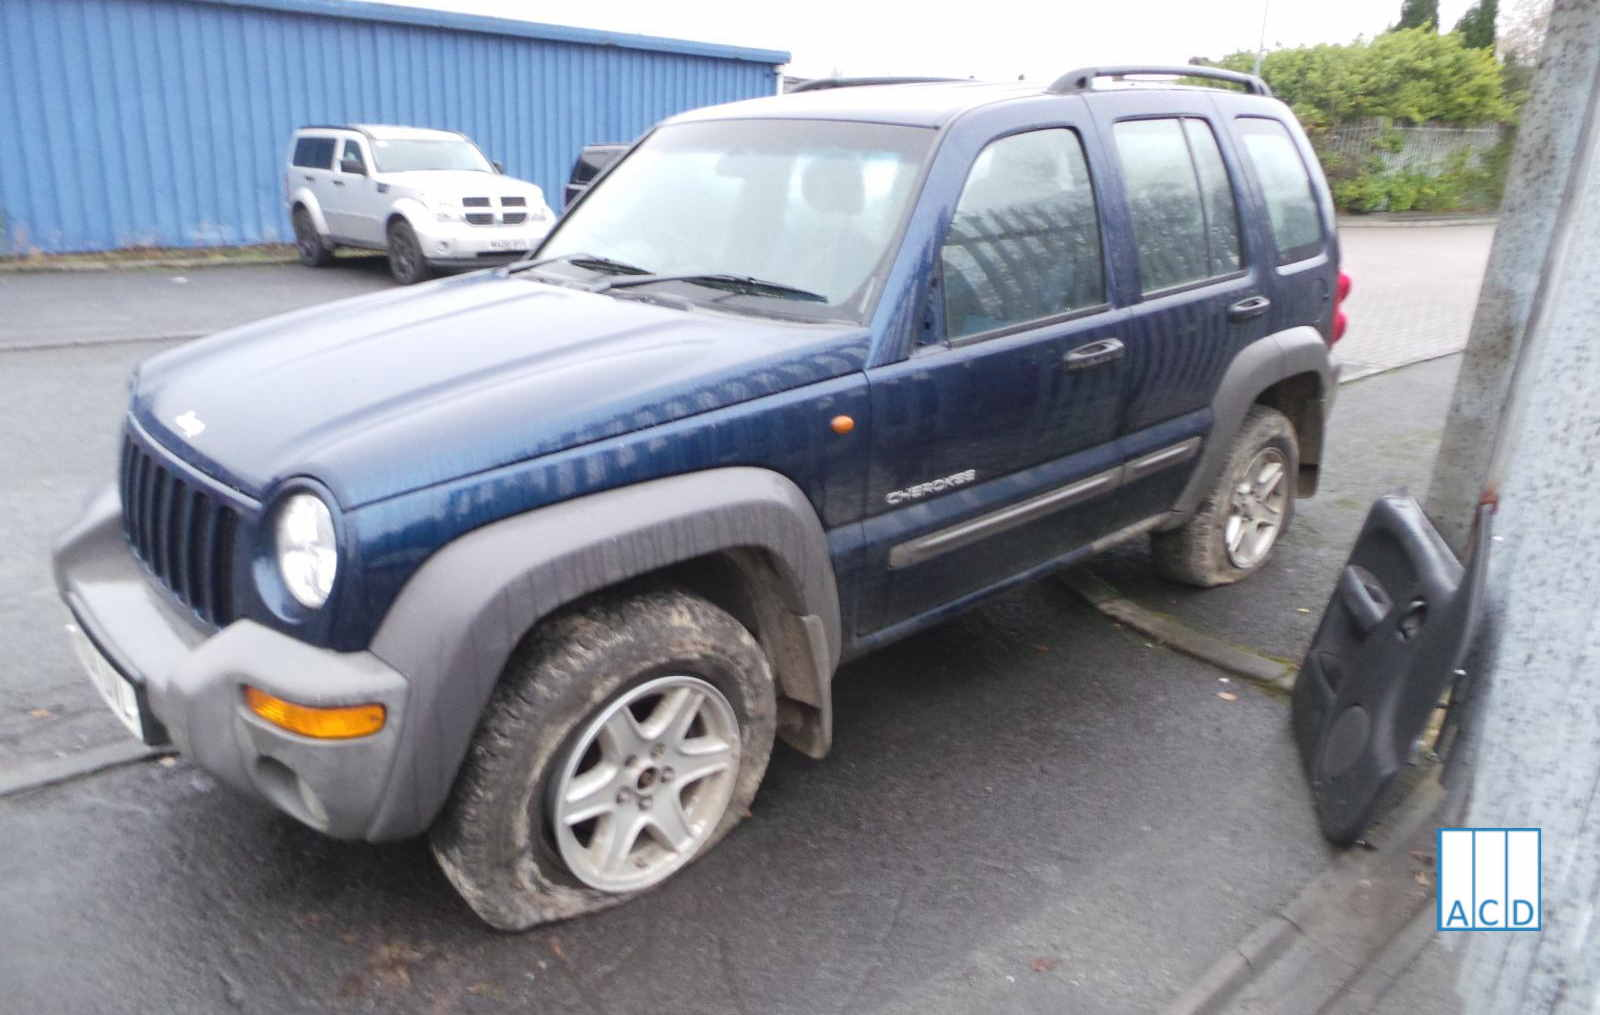 Jeep Cherokee 2.8L 5-Speed Automatic 2004 #3257 01